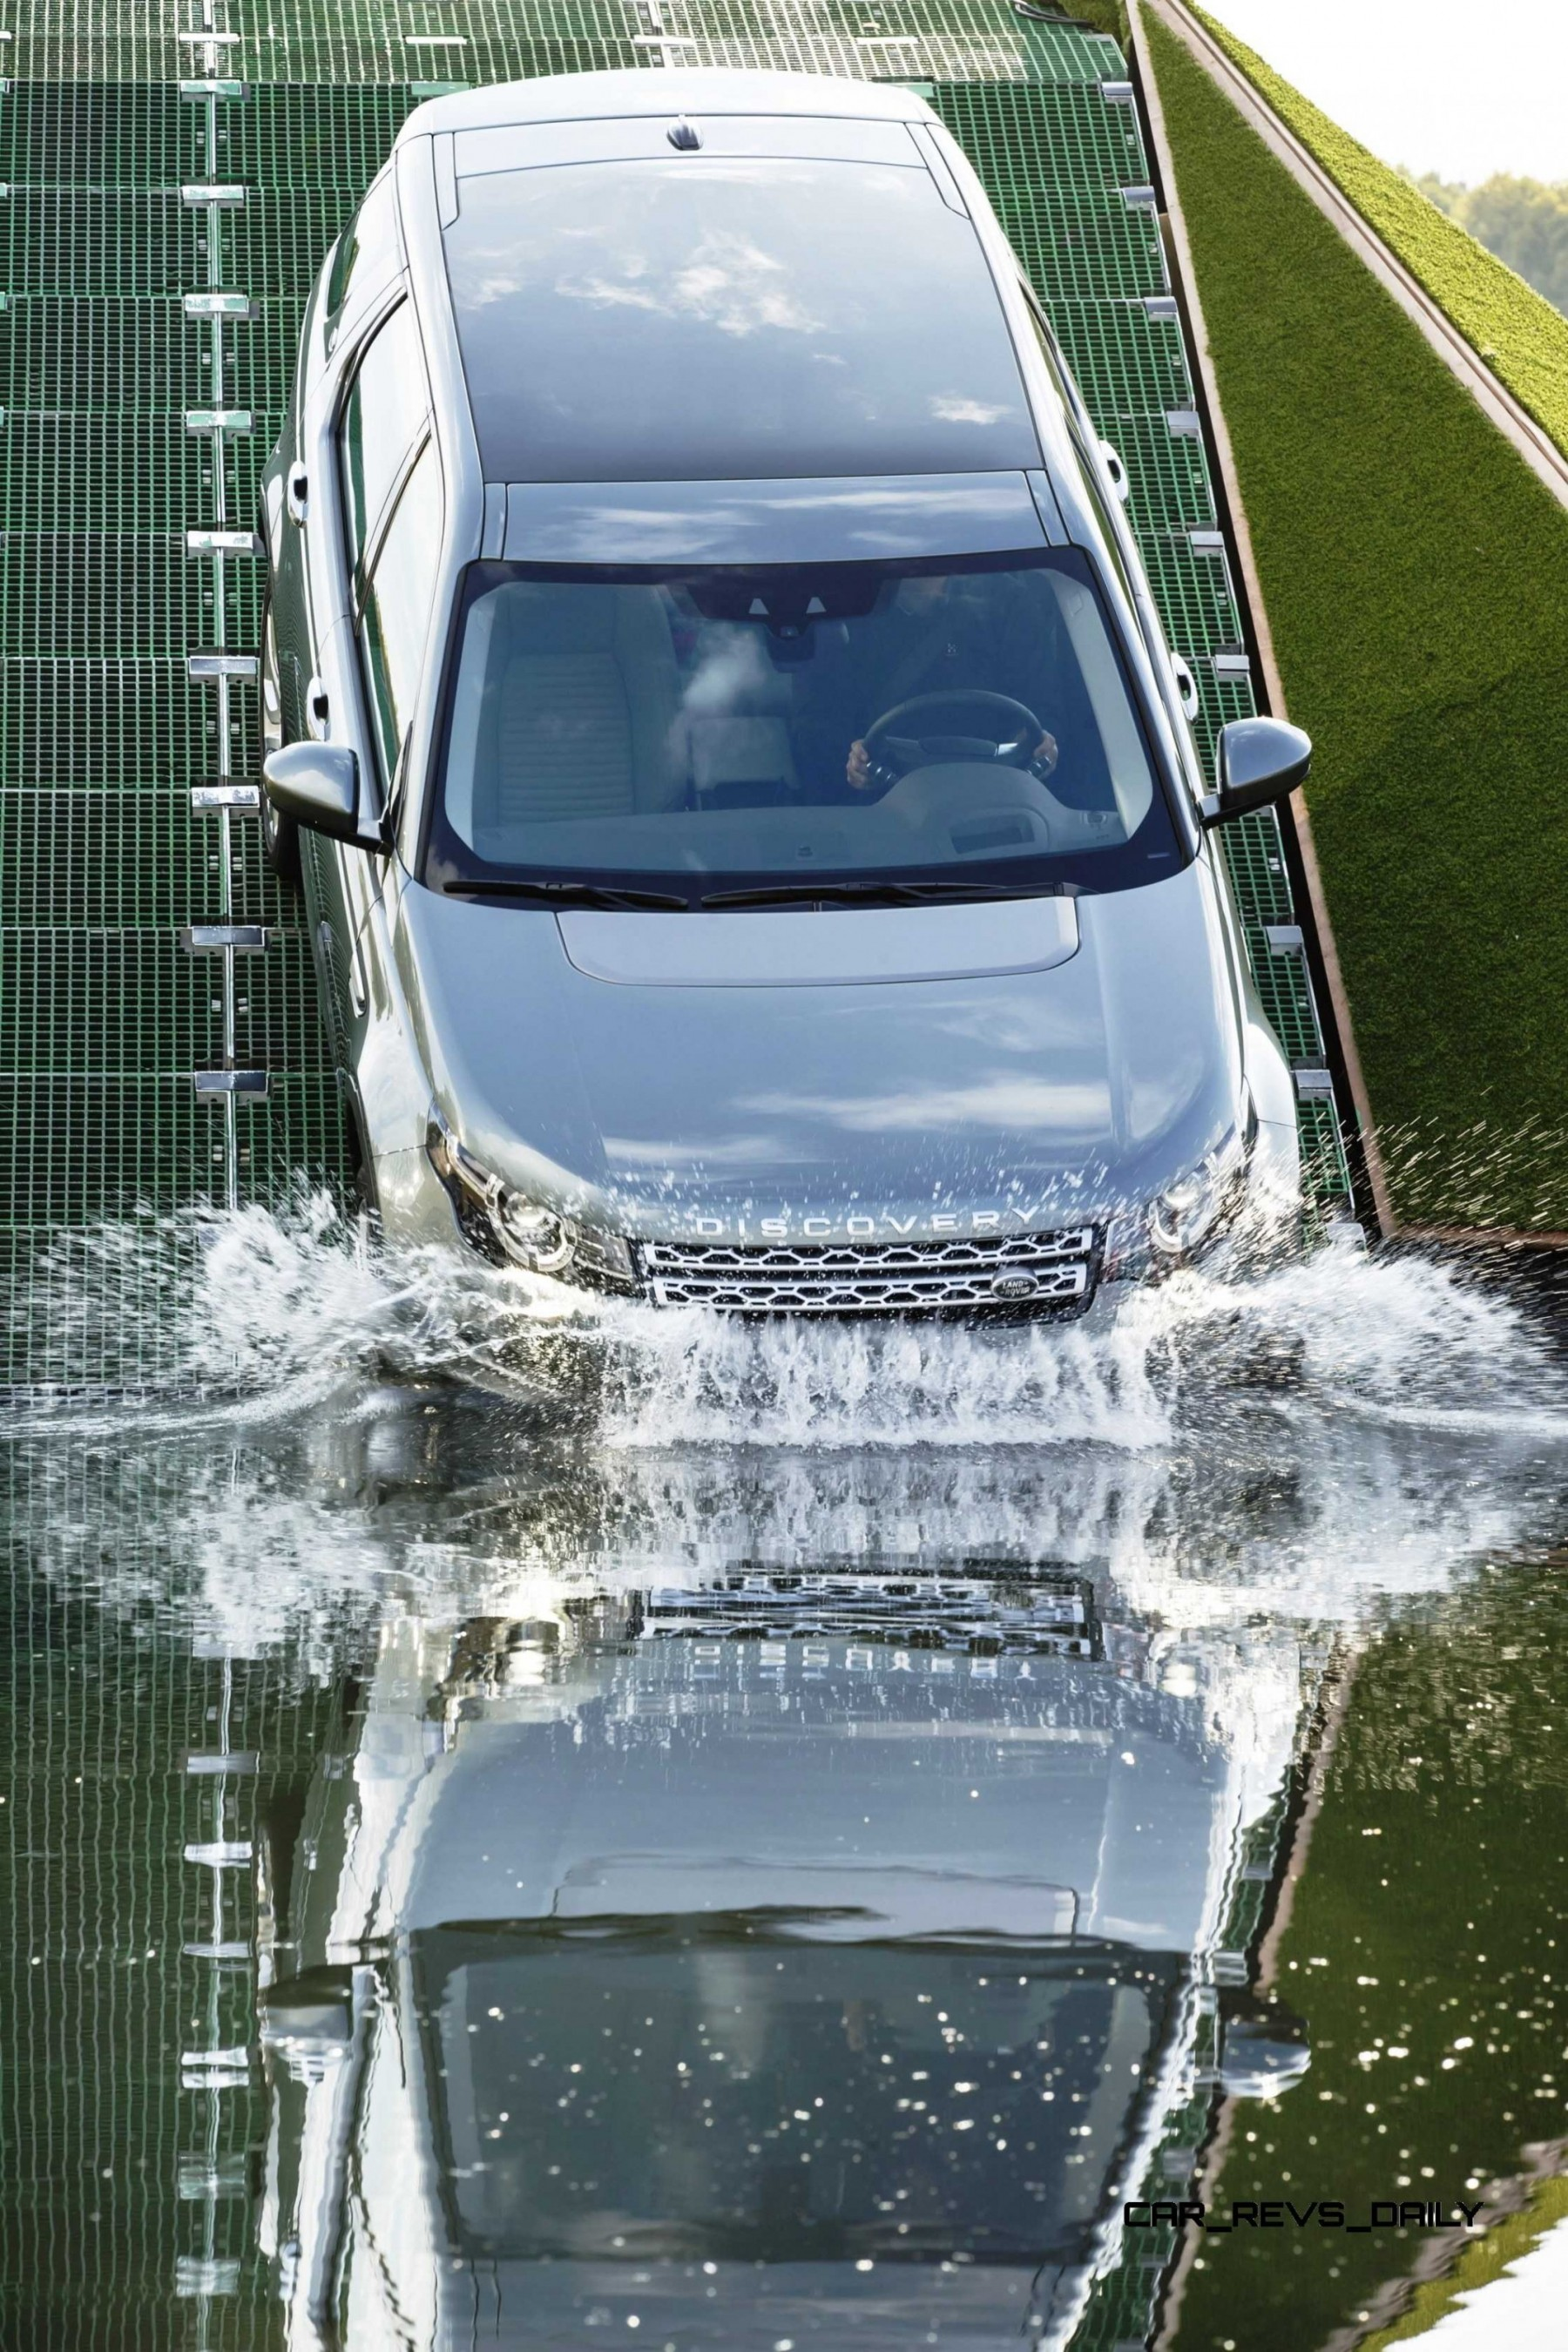 2015 Land Rover Discover Sport Enters Production With Uniquely